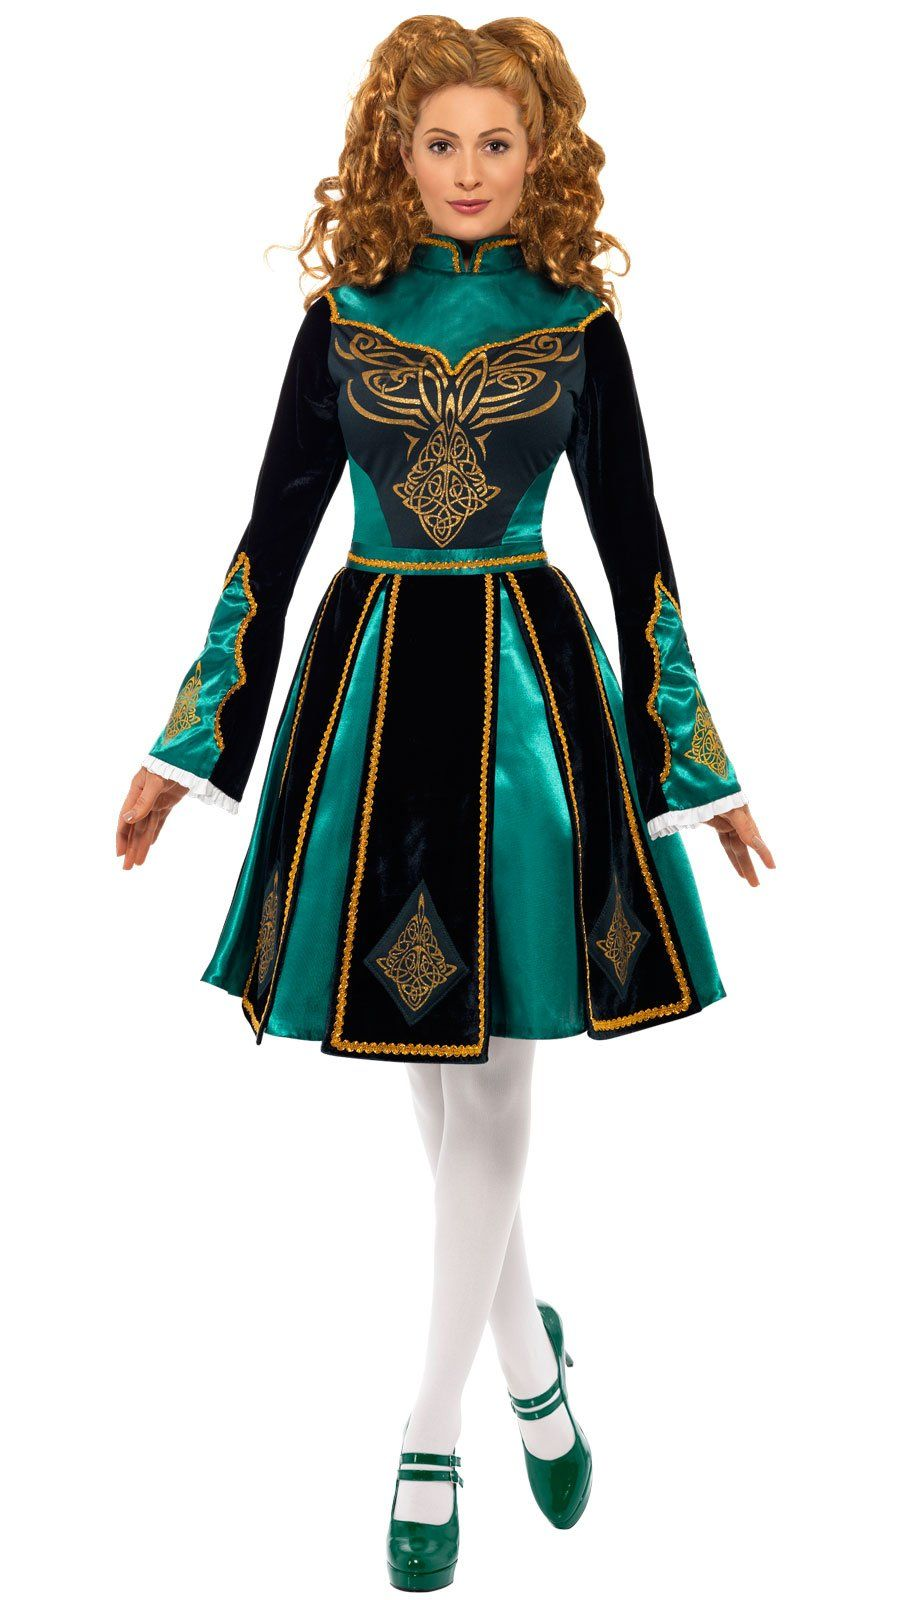 Find great deals on eBay for girls irish dress. Shop with confidence.